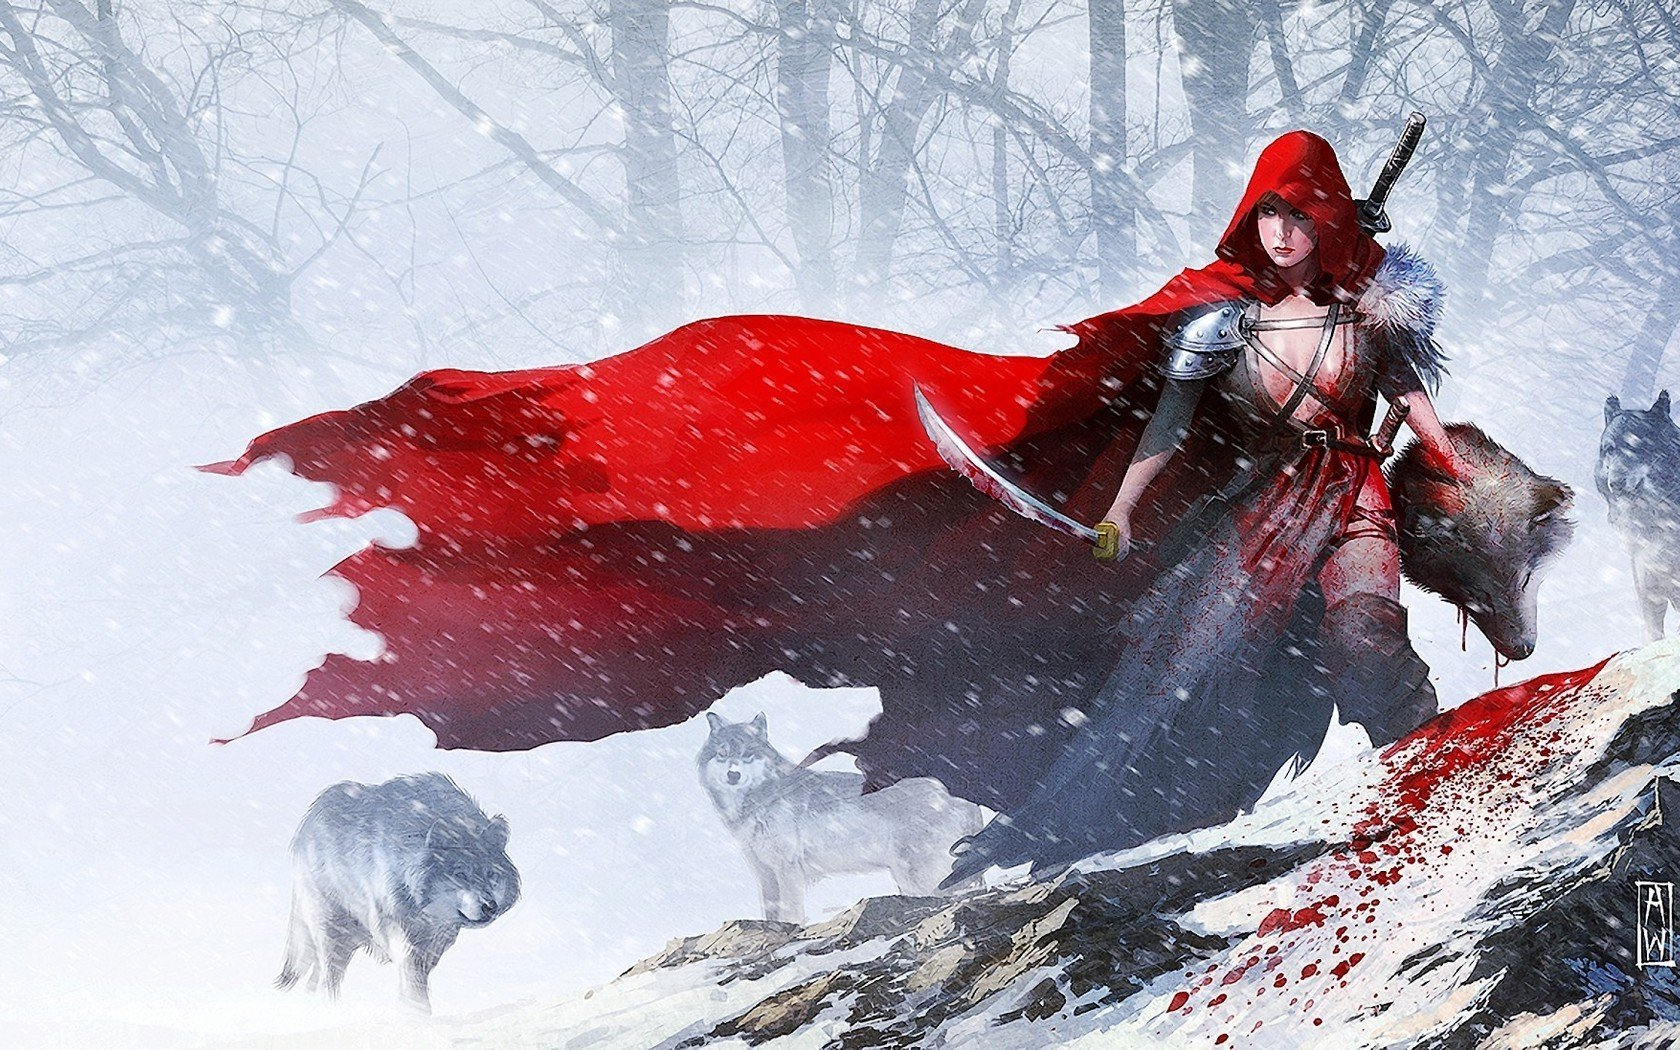 Anime Girl Wallpaper 1440x2960 Red Riding Hood Wallpaper And Background Image 1680x1050